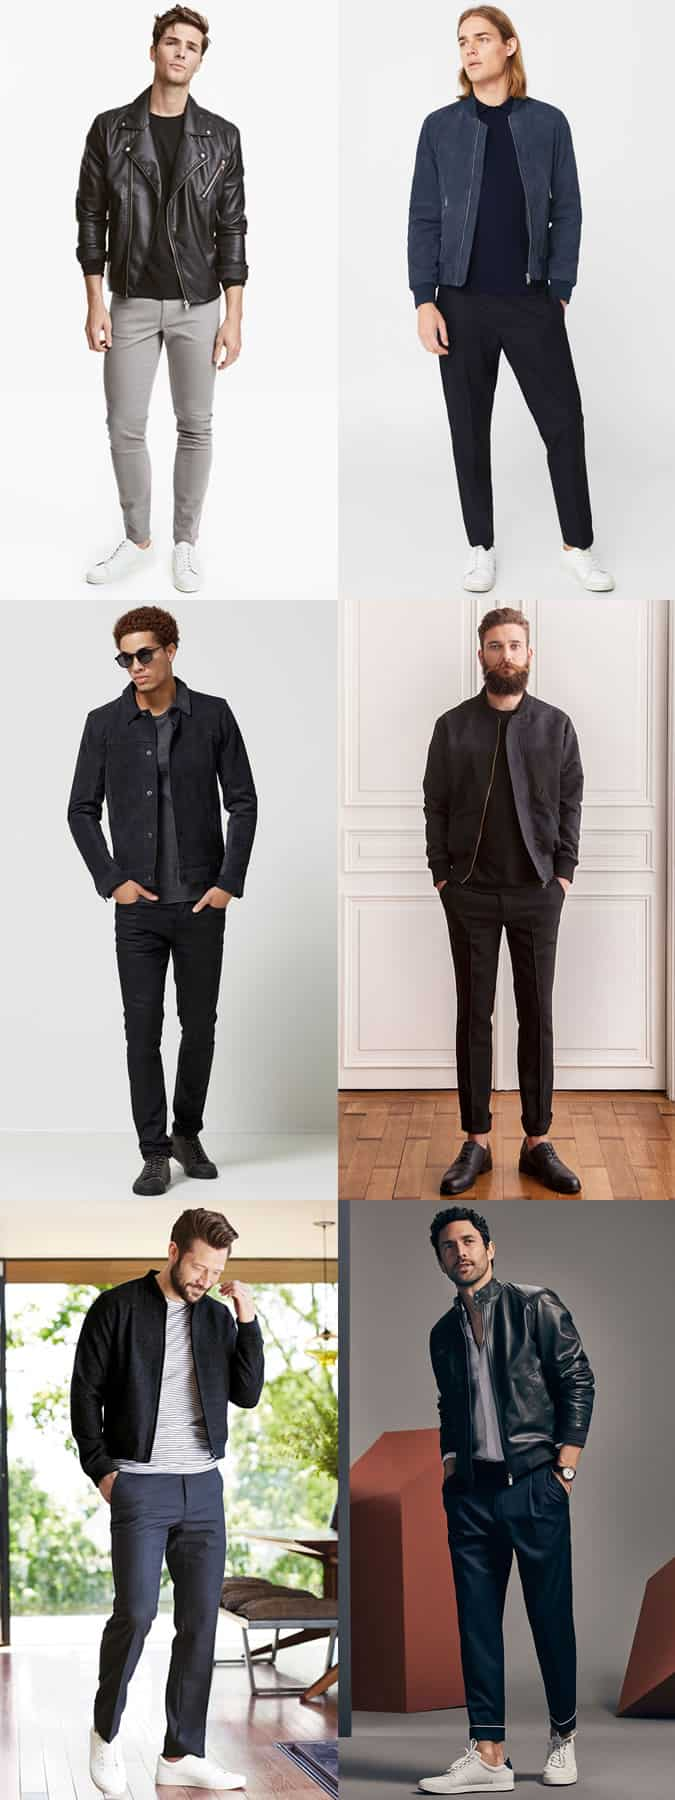 Men's Nightclub Outfit Inspiration Lookbook